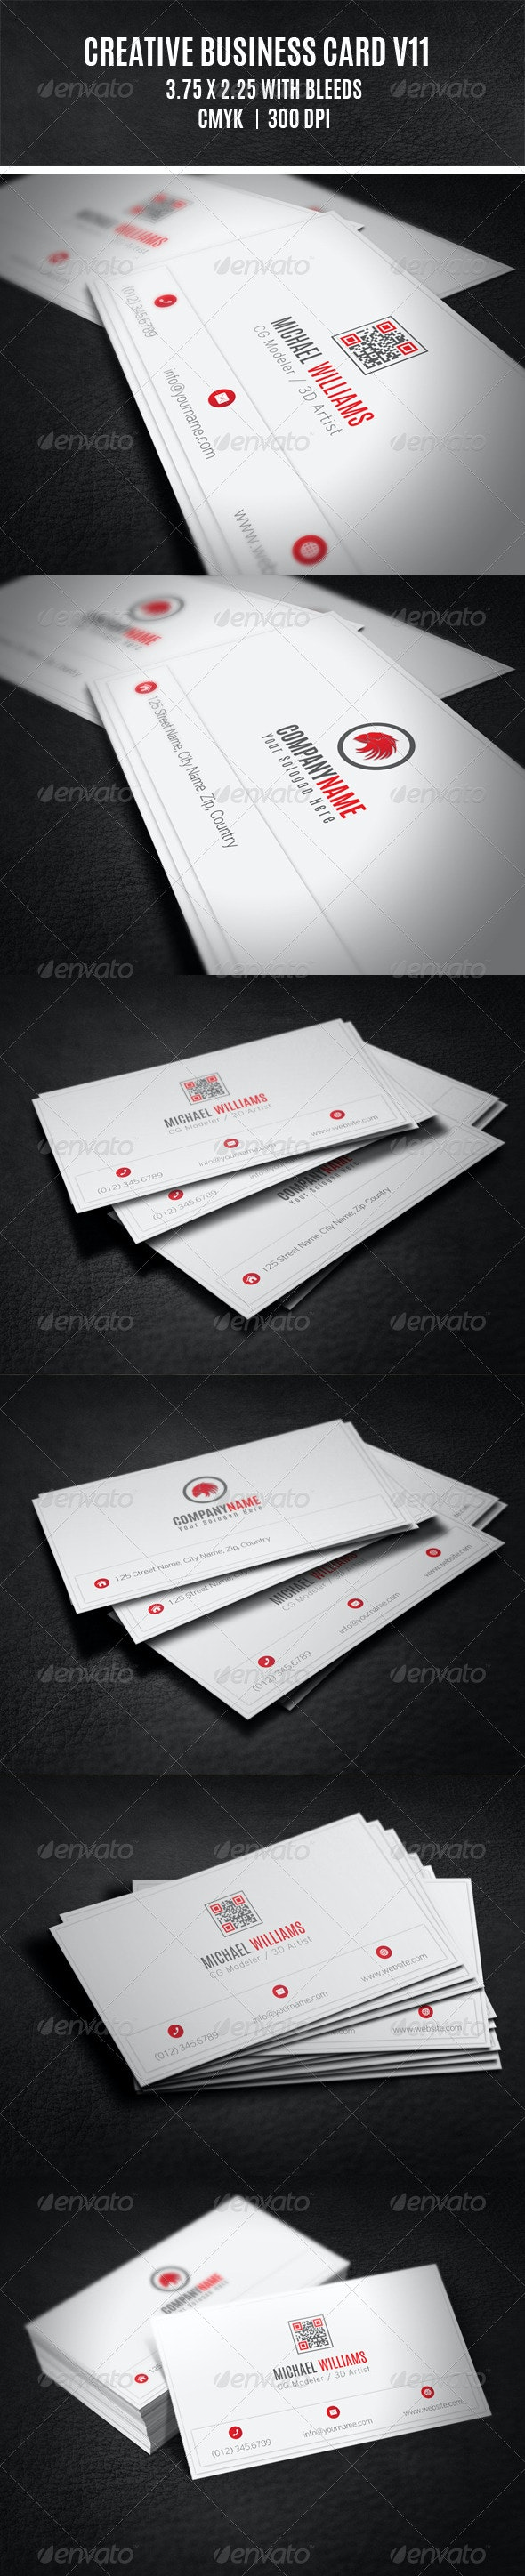 Creative Business Card V11 - Creative Business Cards